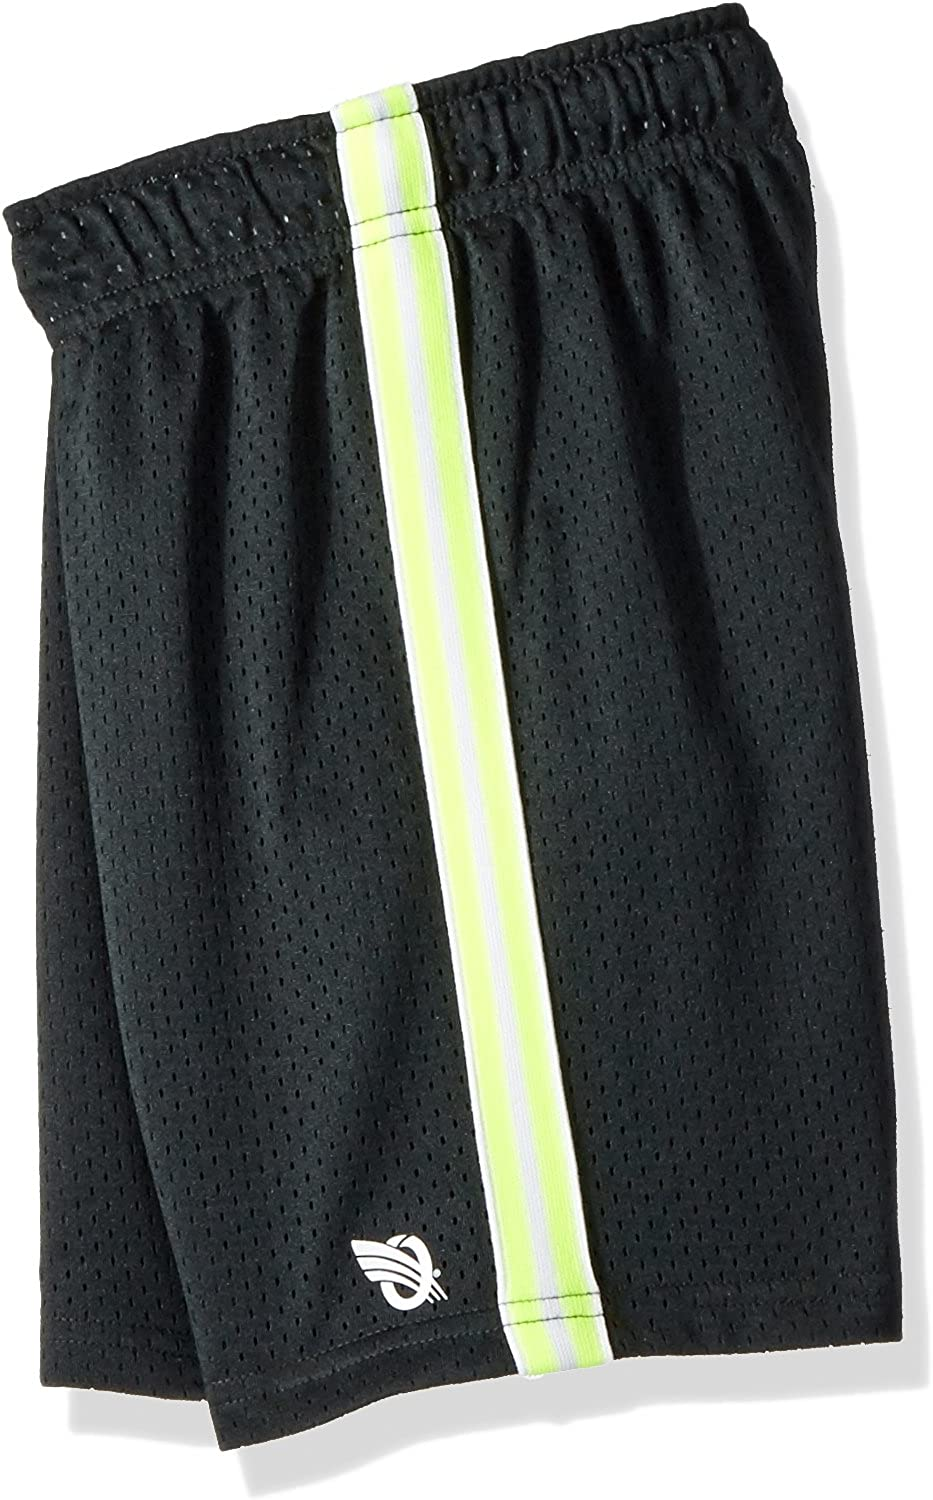 OshKosh BGosh Little Boys Mesh Shorts 5 Kids Neon Yellow Black Space Dyed